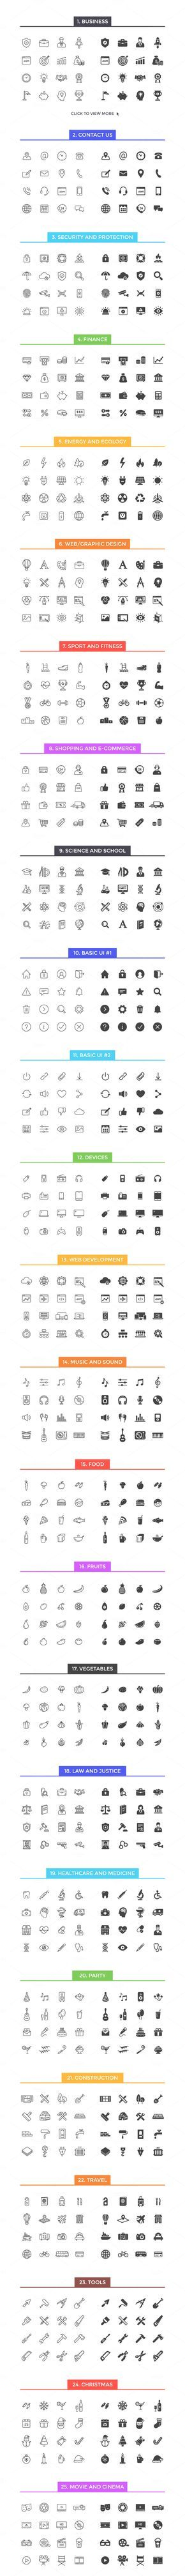 800 Line & Solid Icons including business, contact, security, finance, sports, fitness, school, devices, ui, food, media, travel, and holidays.